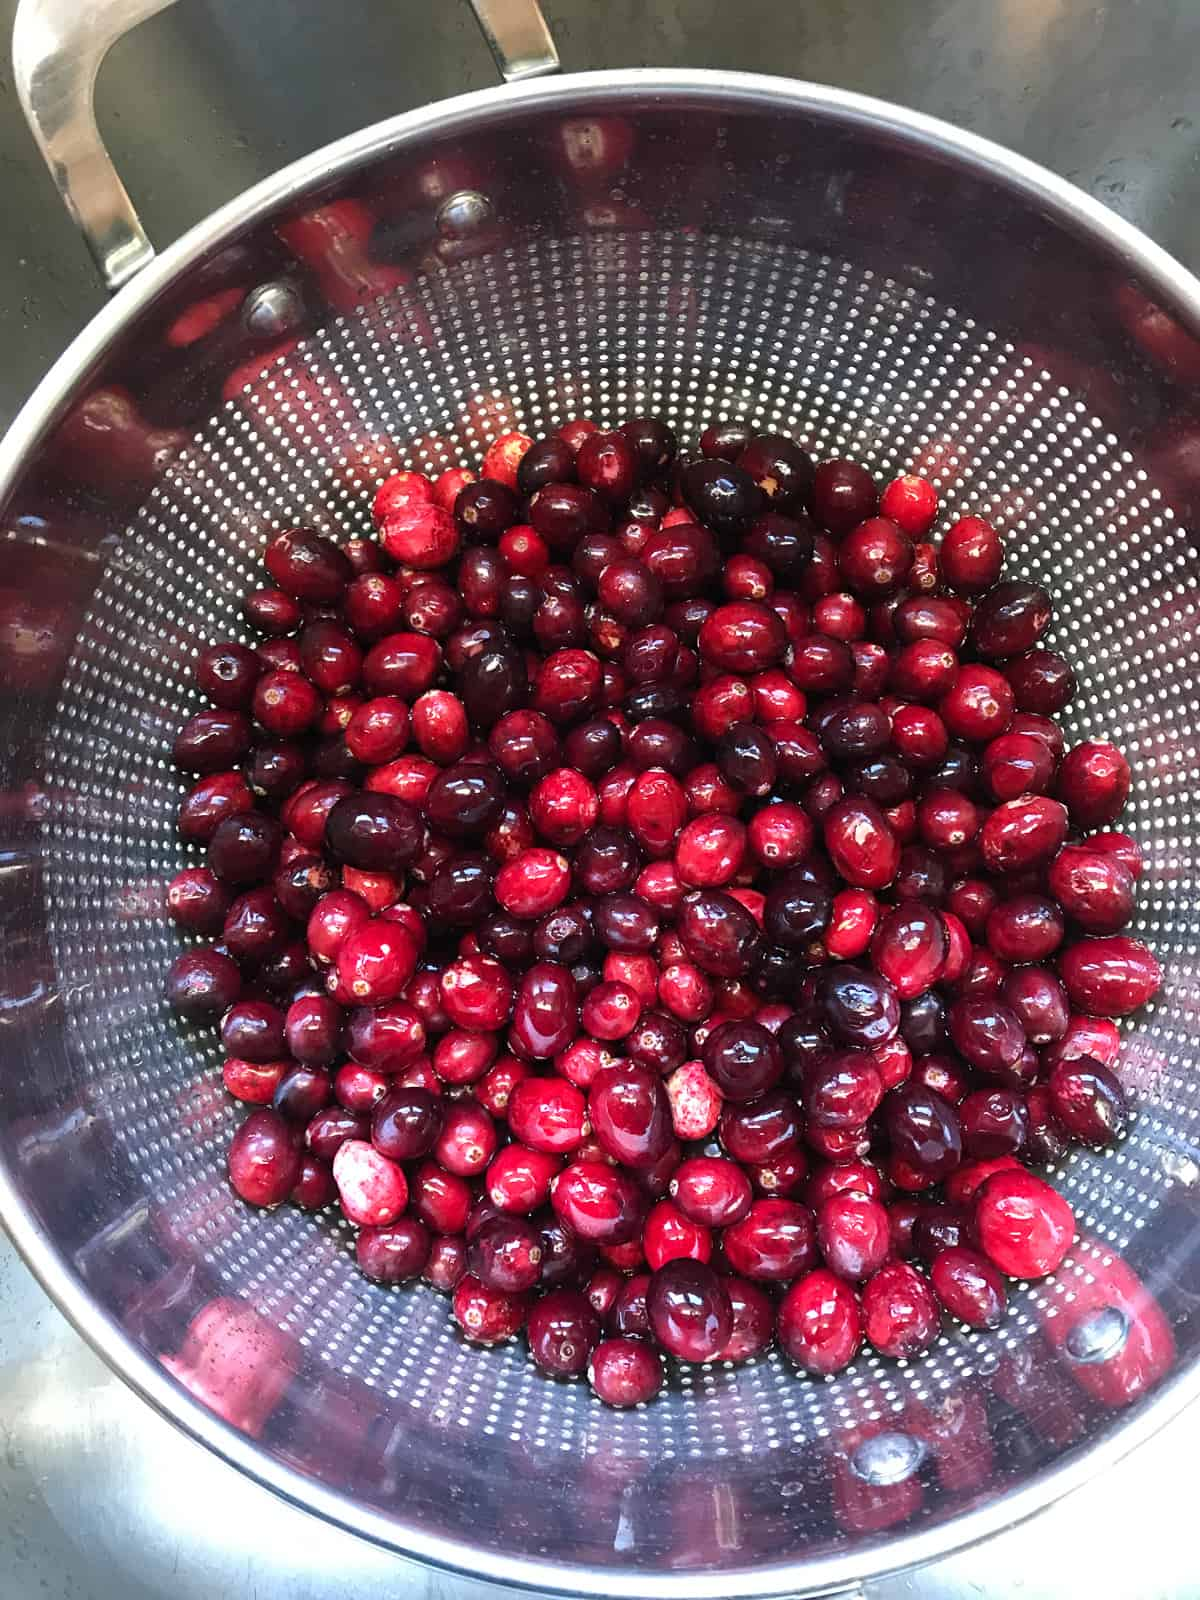 Washing cranberries in a colander.